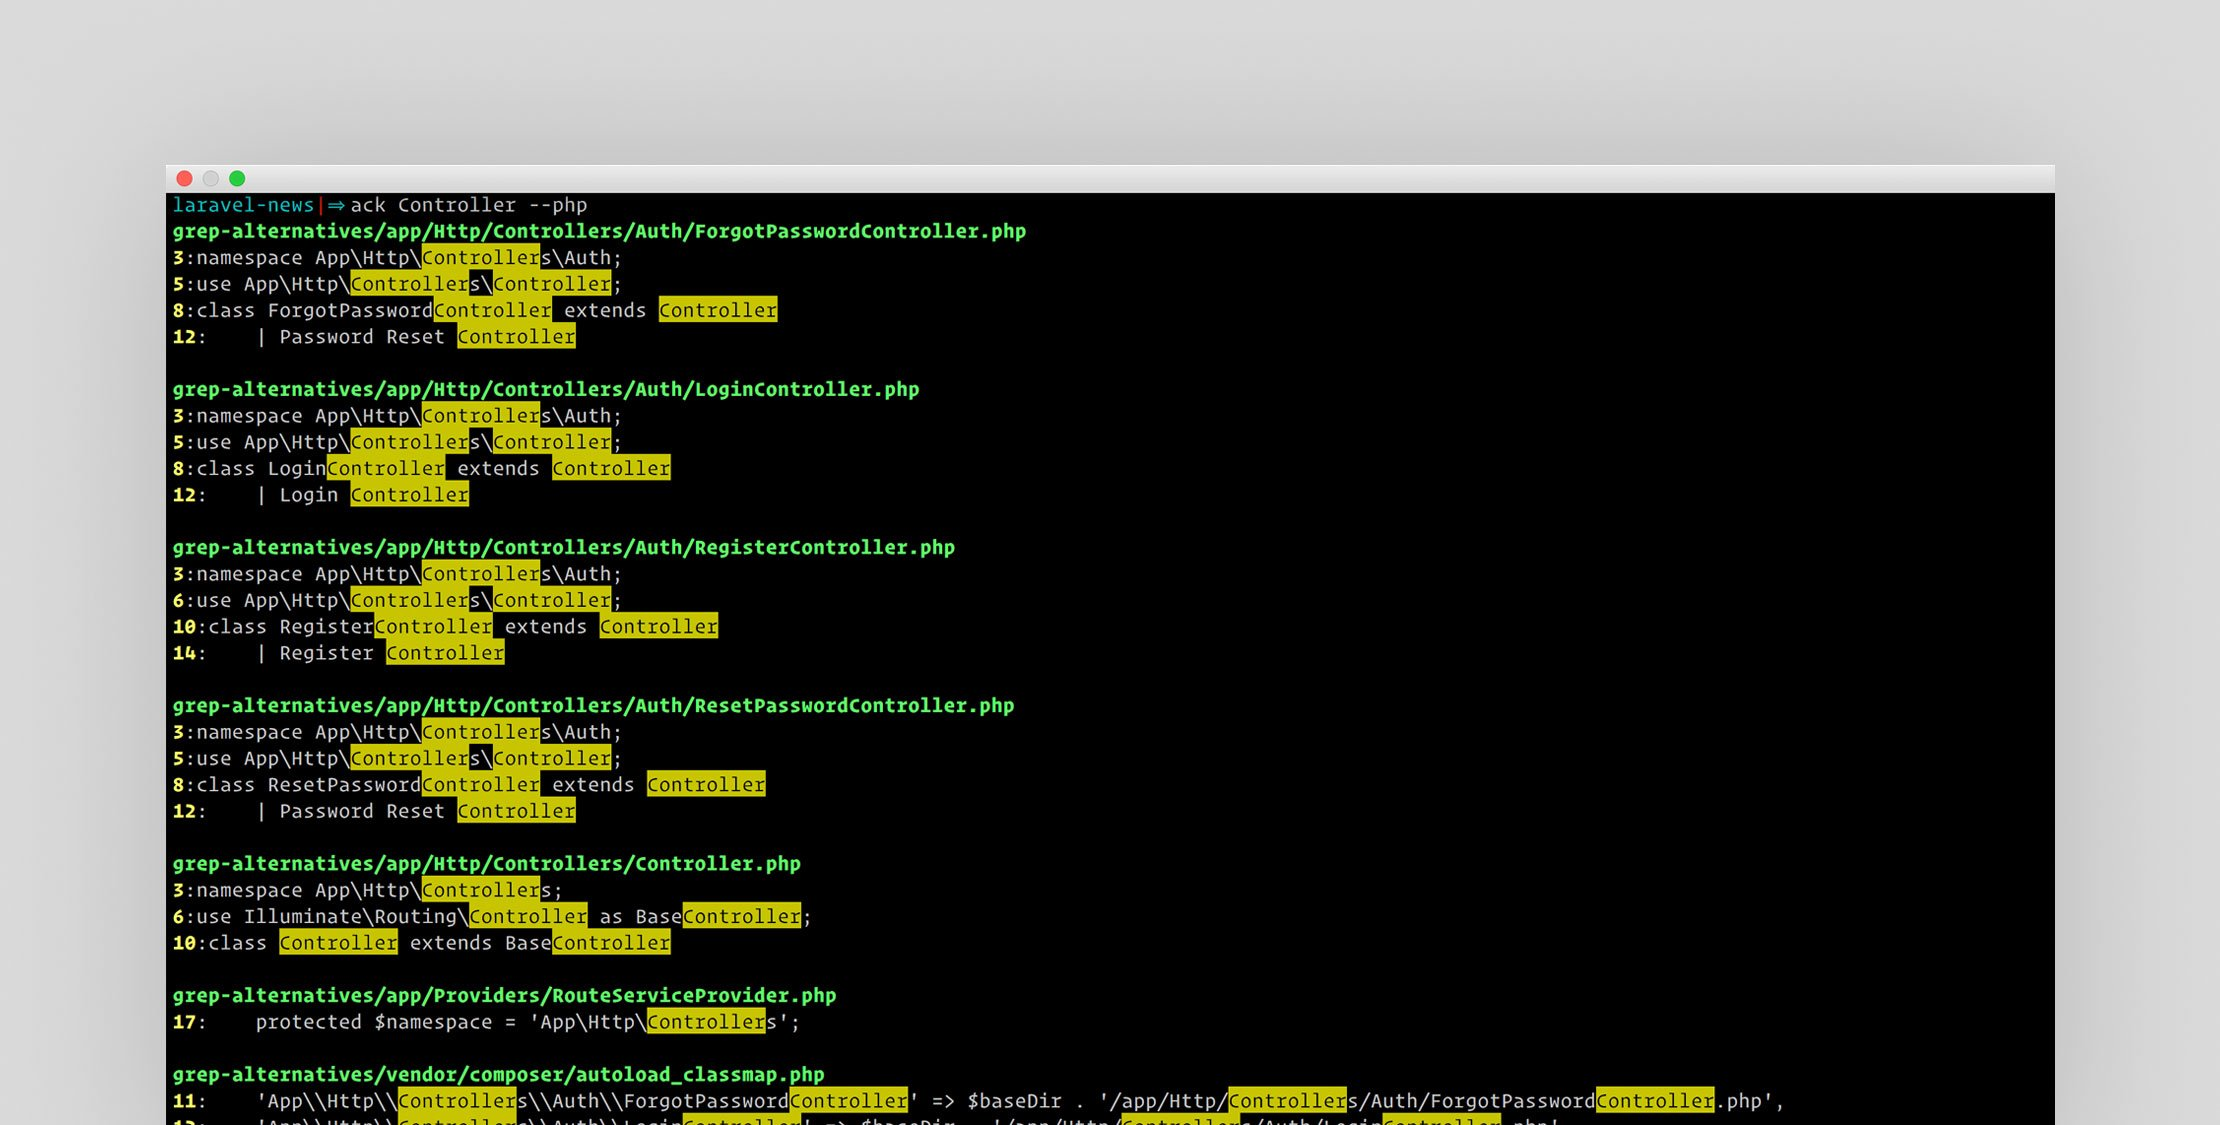 command-line-search-tools.jpg